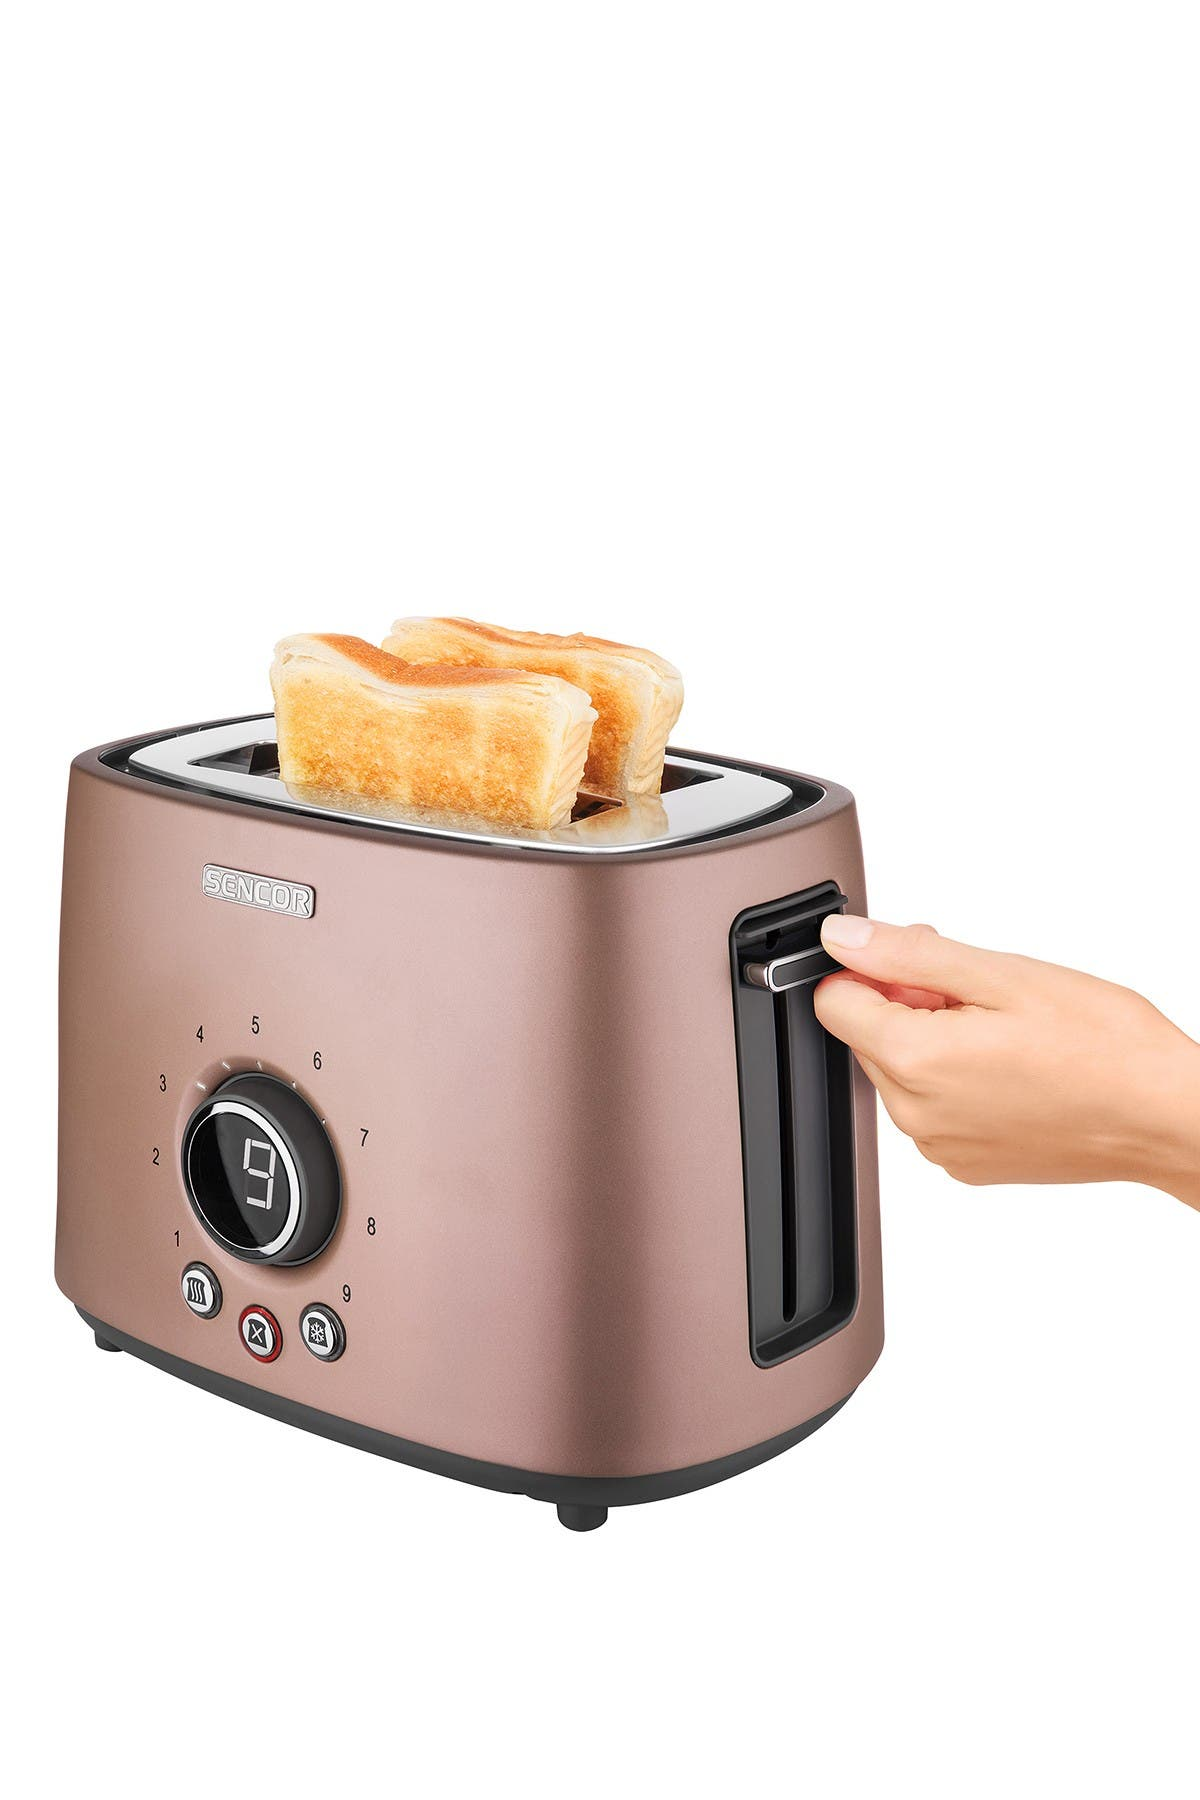 Image of SENCOR Pink Digital 2-Slot Toaster